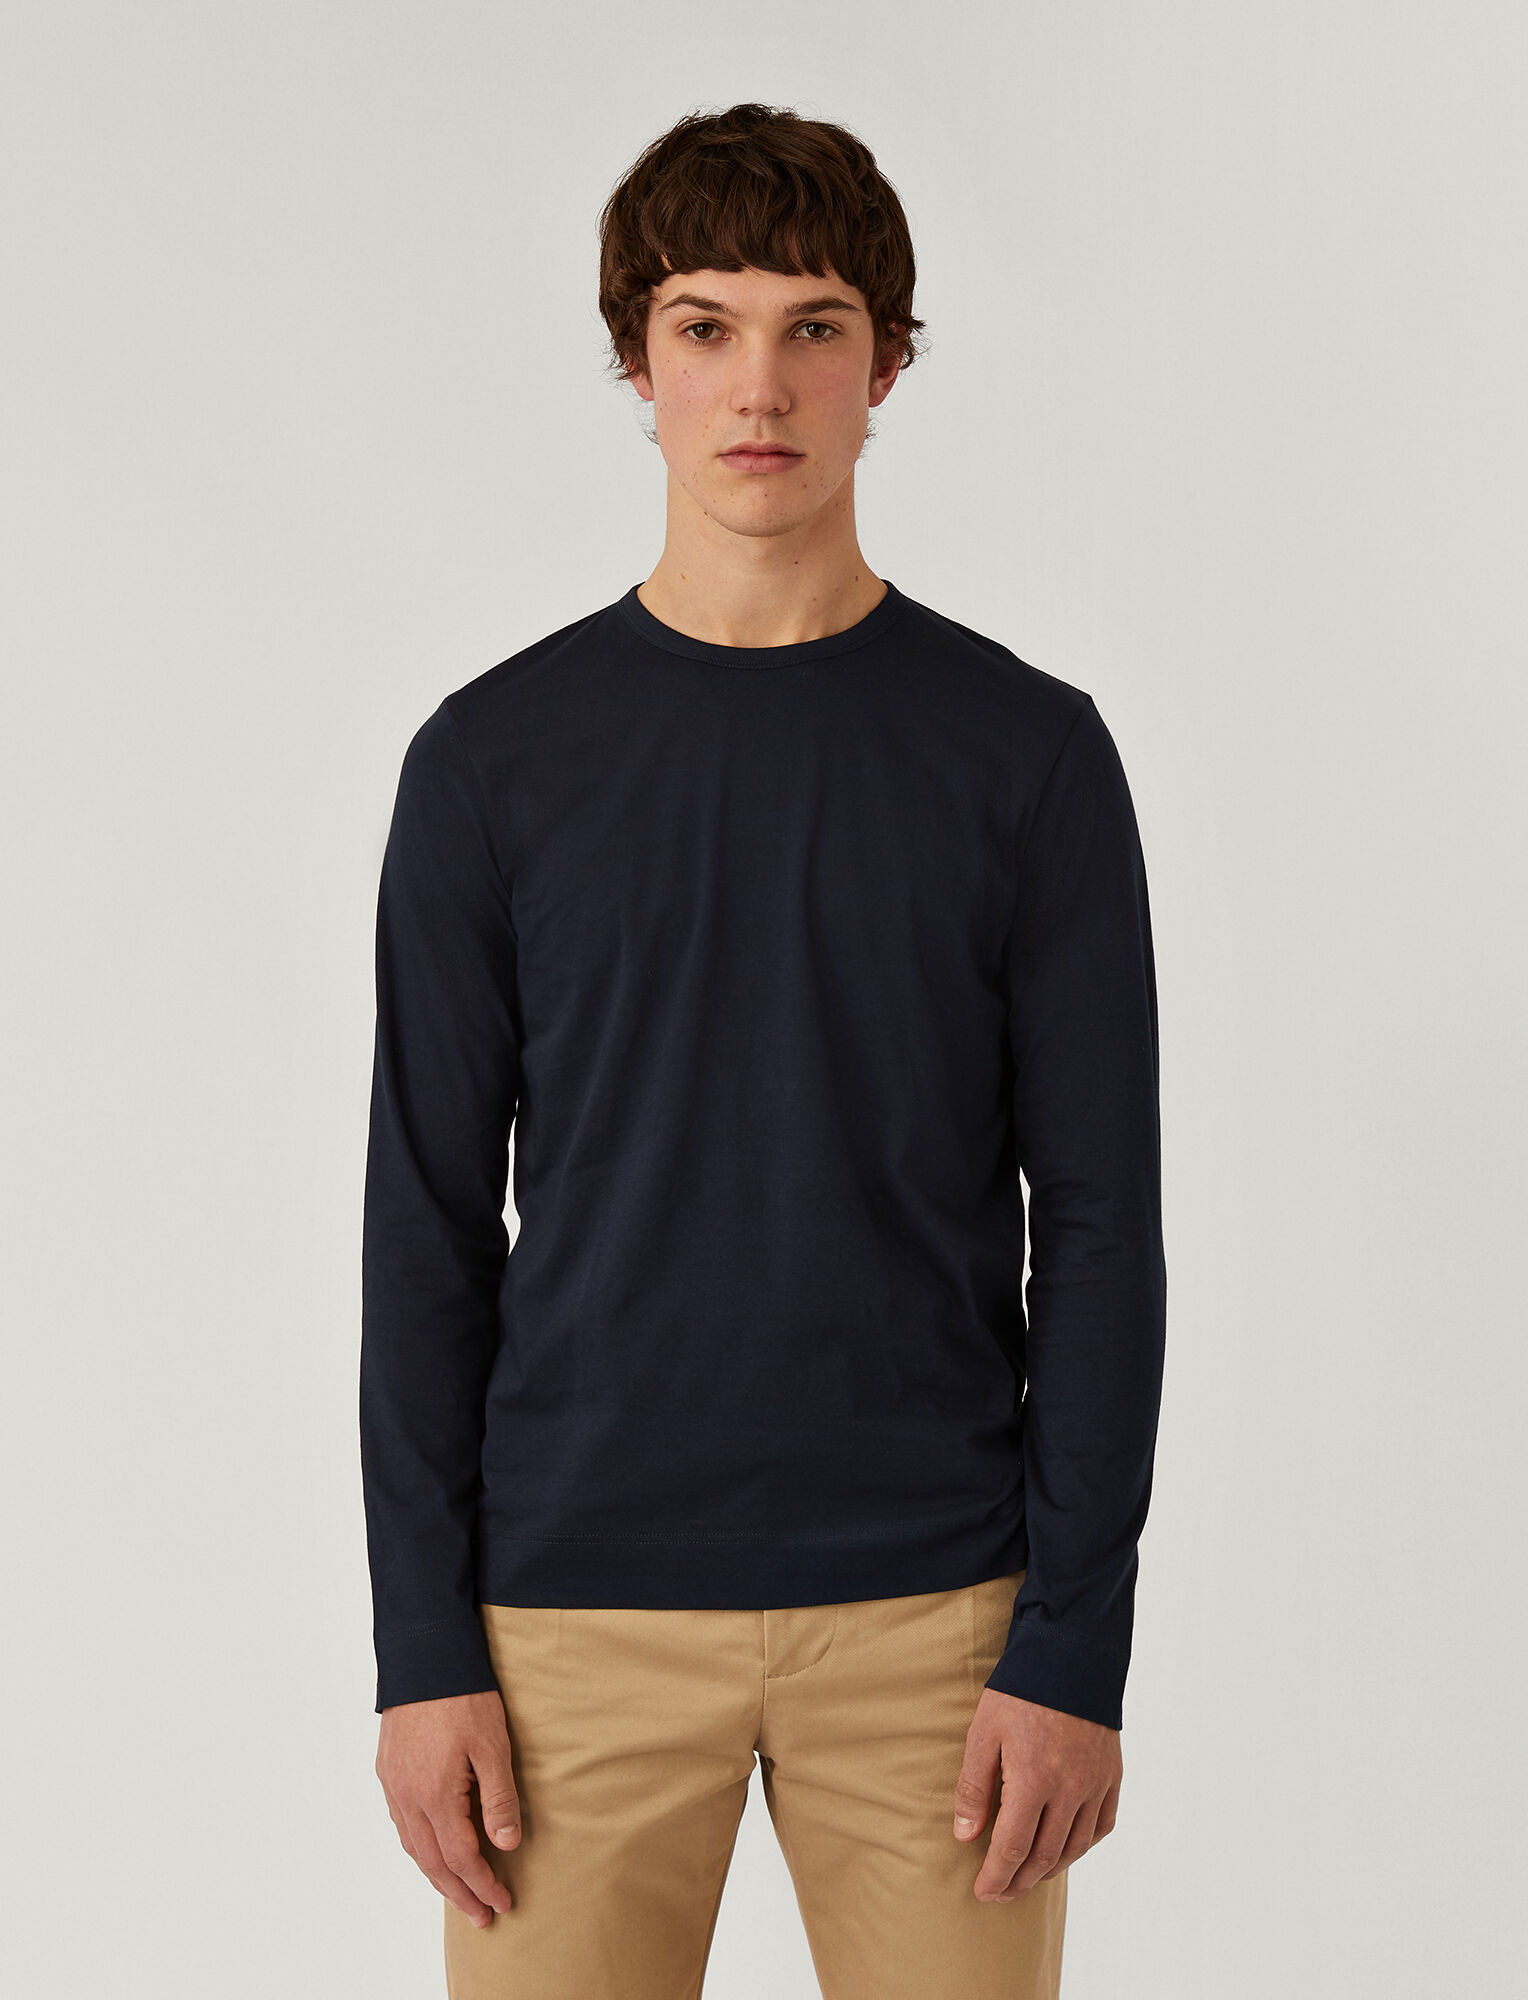 Joseph, Mercerised Jersey Top, in NAVY